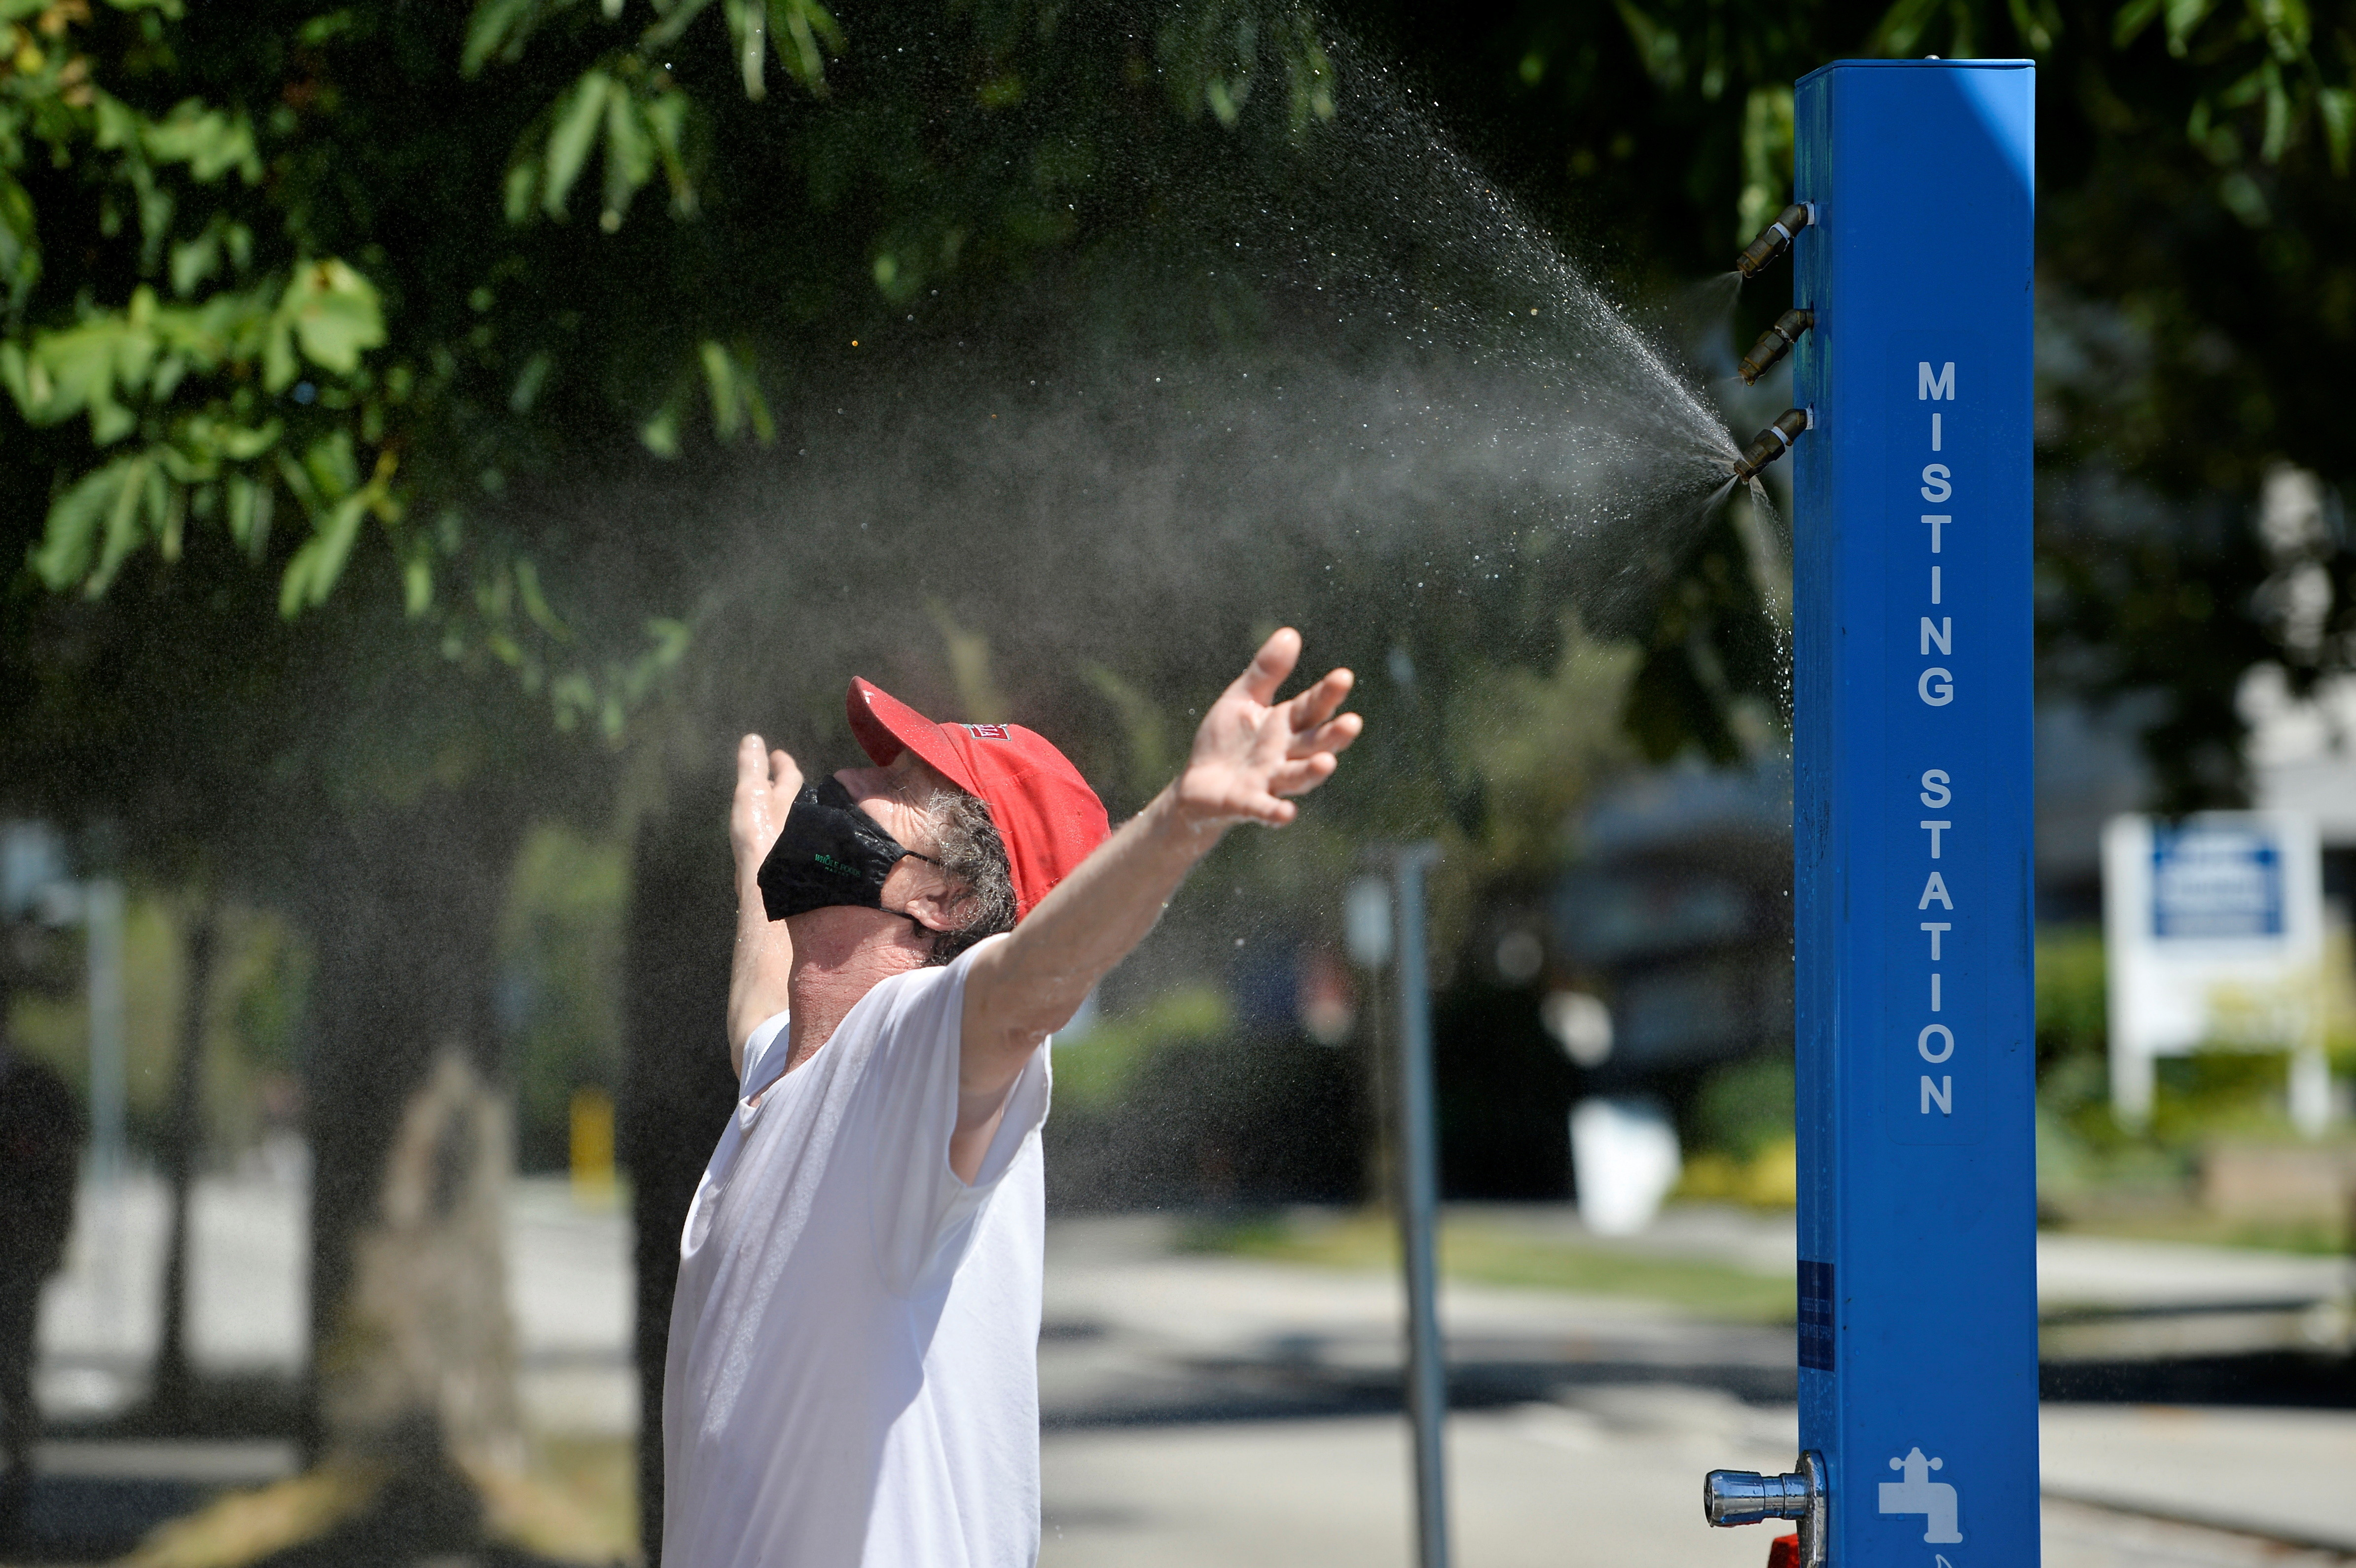 A man cools off at a misting station during the scorching weather of a heatwave in Vancouver, British Columbia, Canada